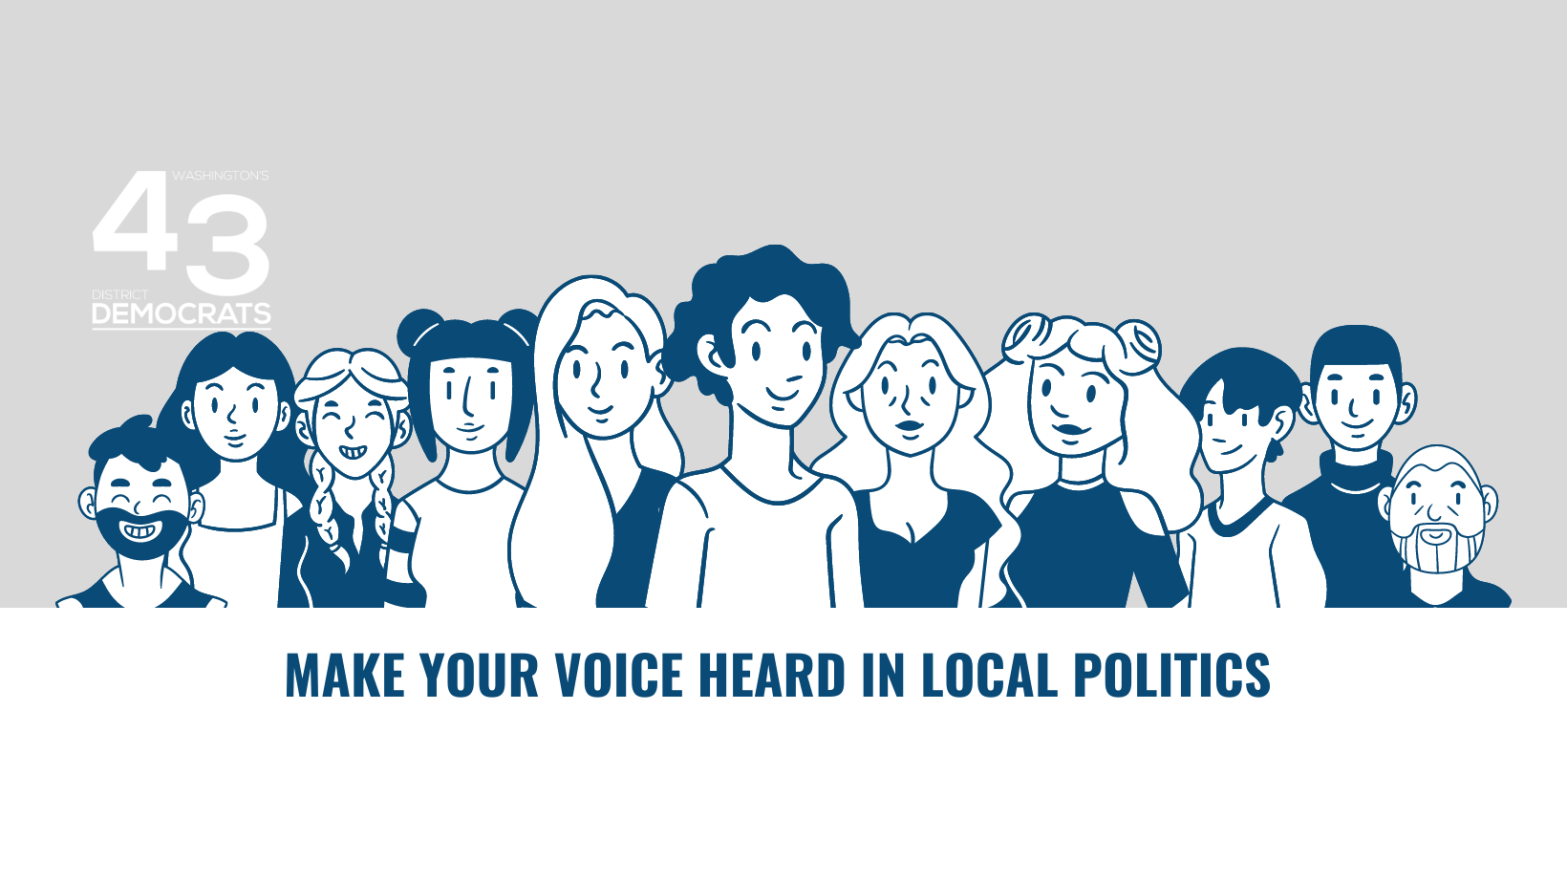 """The 43rd District Democrats' logo sits at left in all white, just above a row of cartoon-like people (mixed in genders, race, styles) in the colors of blue and white, depicted from the torso up. Below them is a white rectangle with the blue words """"Make your voice heard in local politics"""""""